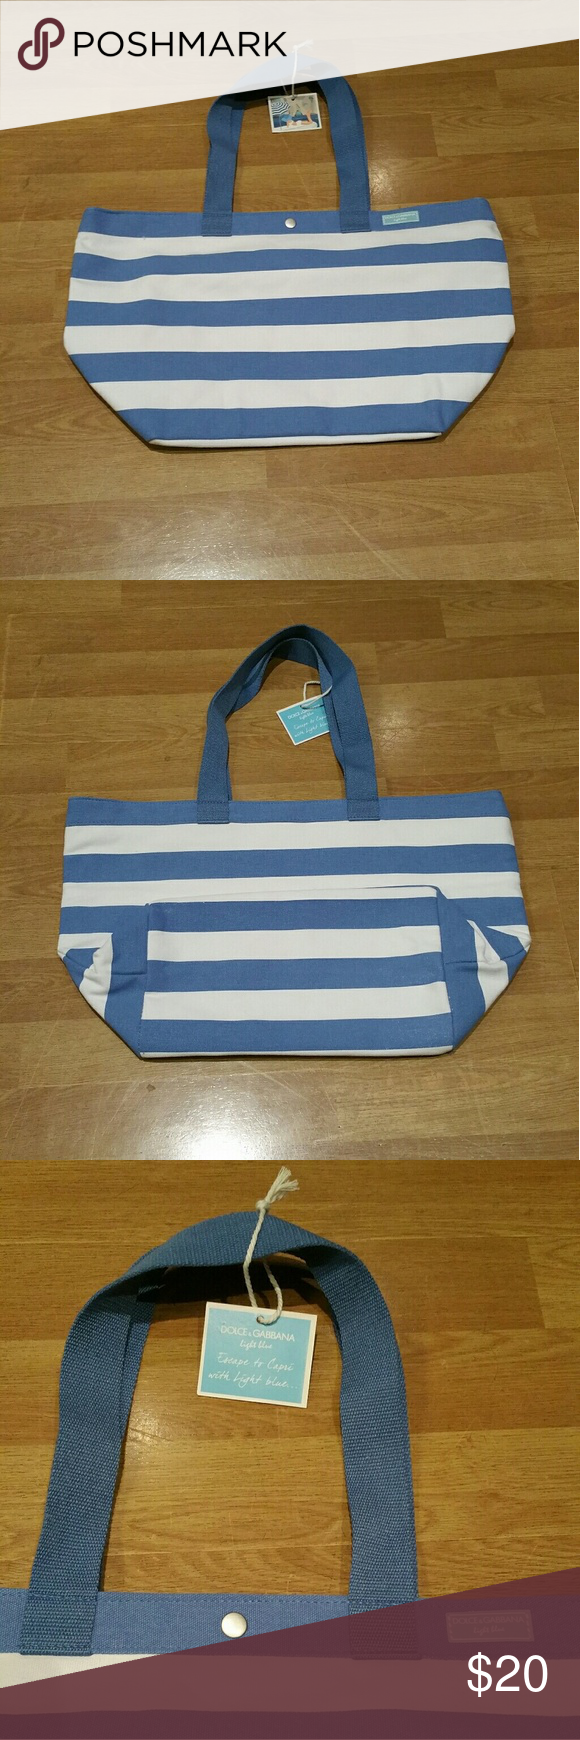 Dolce   Gabbana tote bag New. Blue and white striped beach bag tote.  Interior  one big and one small slip in pockets. Dolce   Gabbana Bags Totes 9cbb6a376b